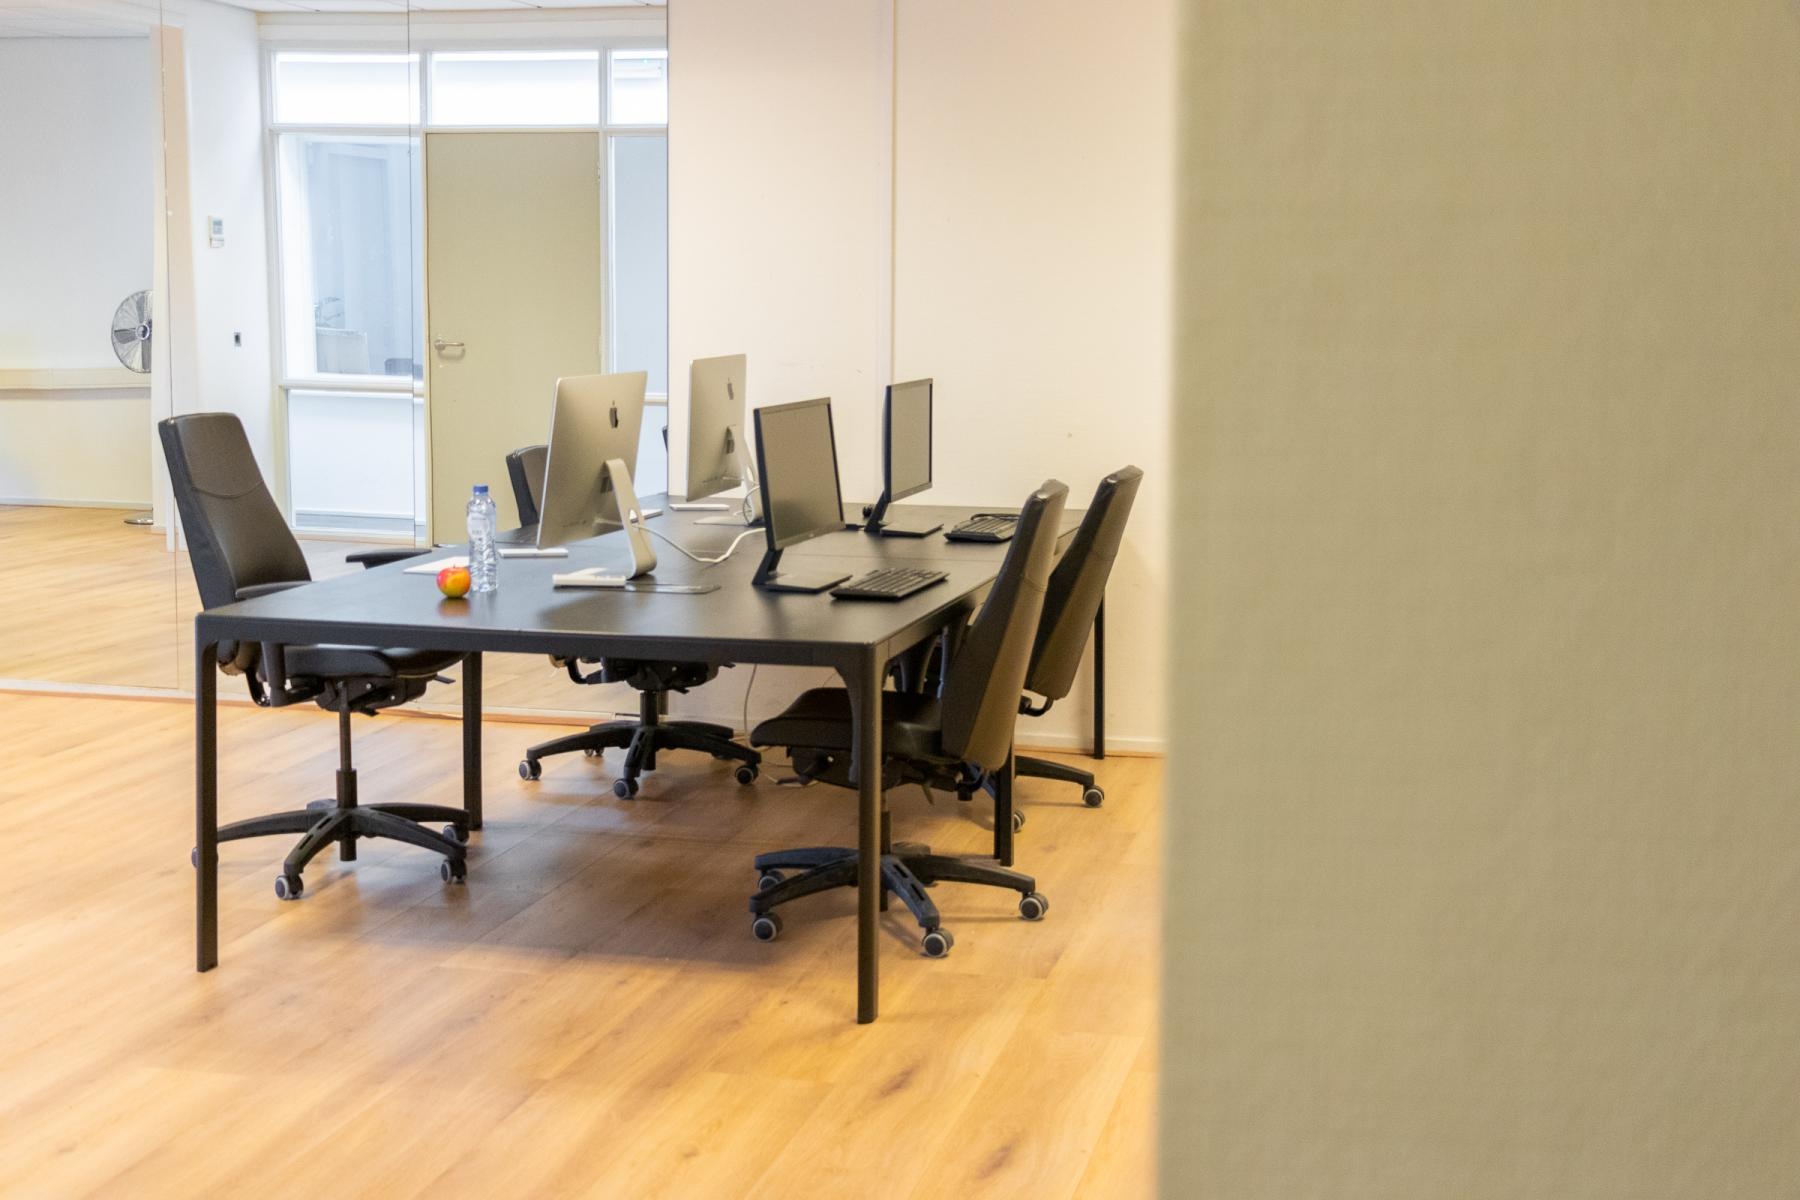 Rent office space Amstel 62, Amsterdam (7)